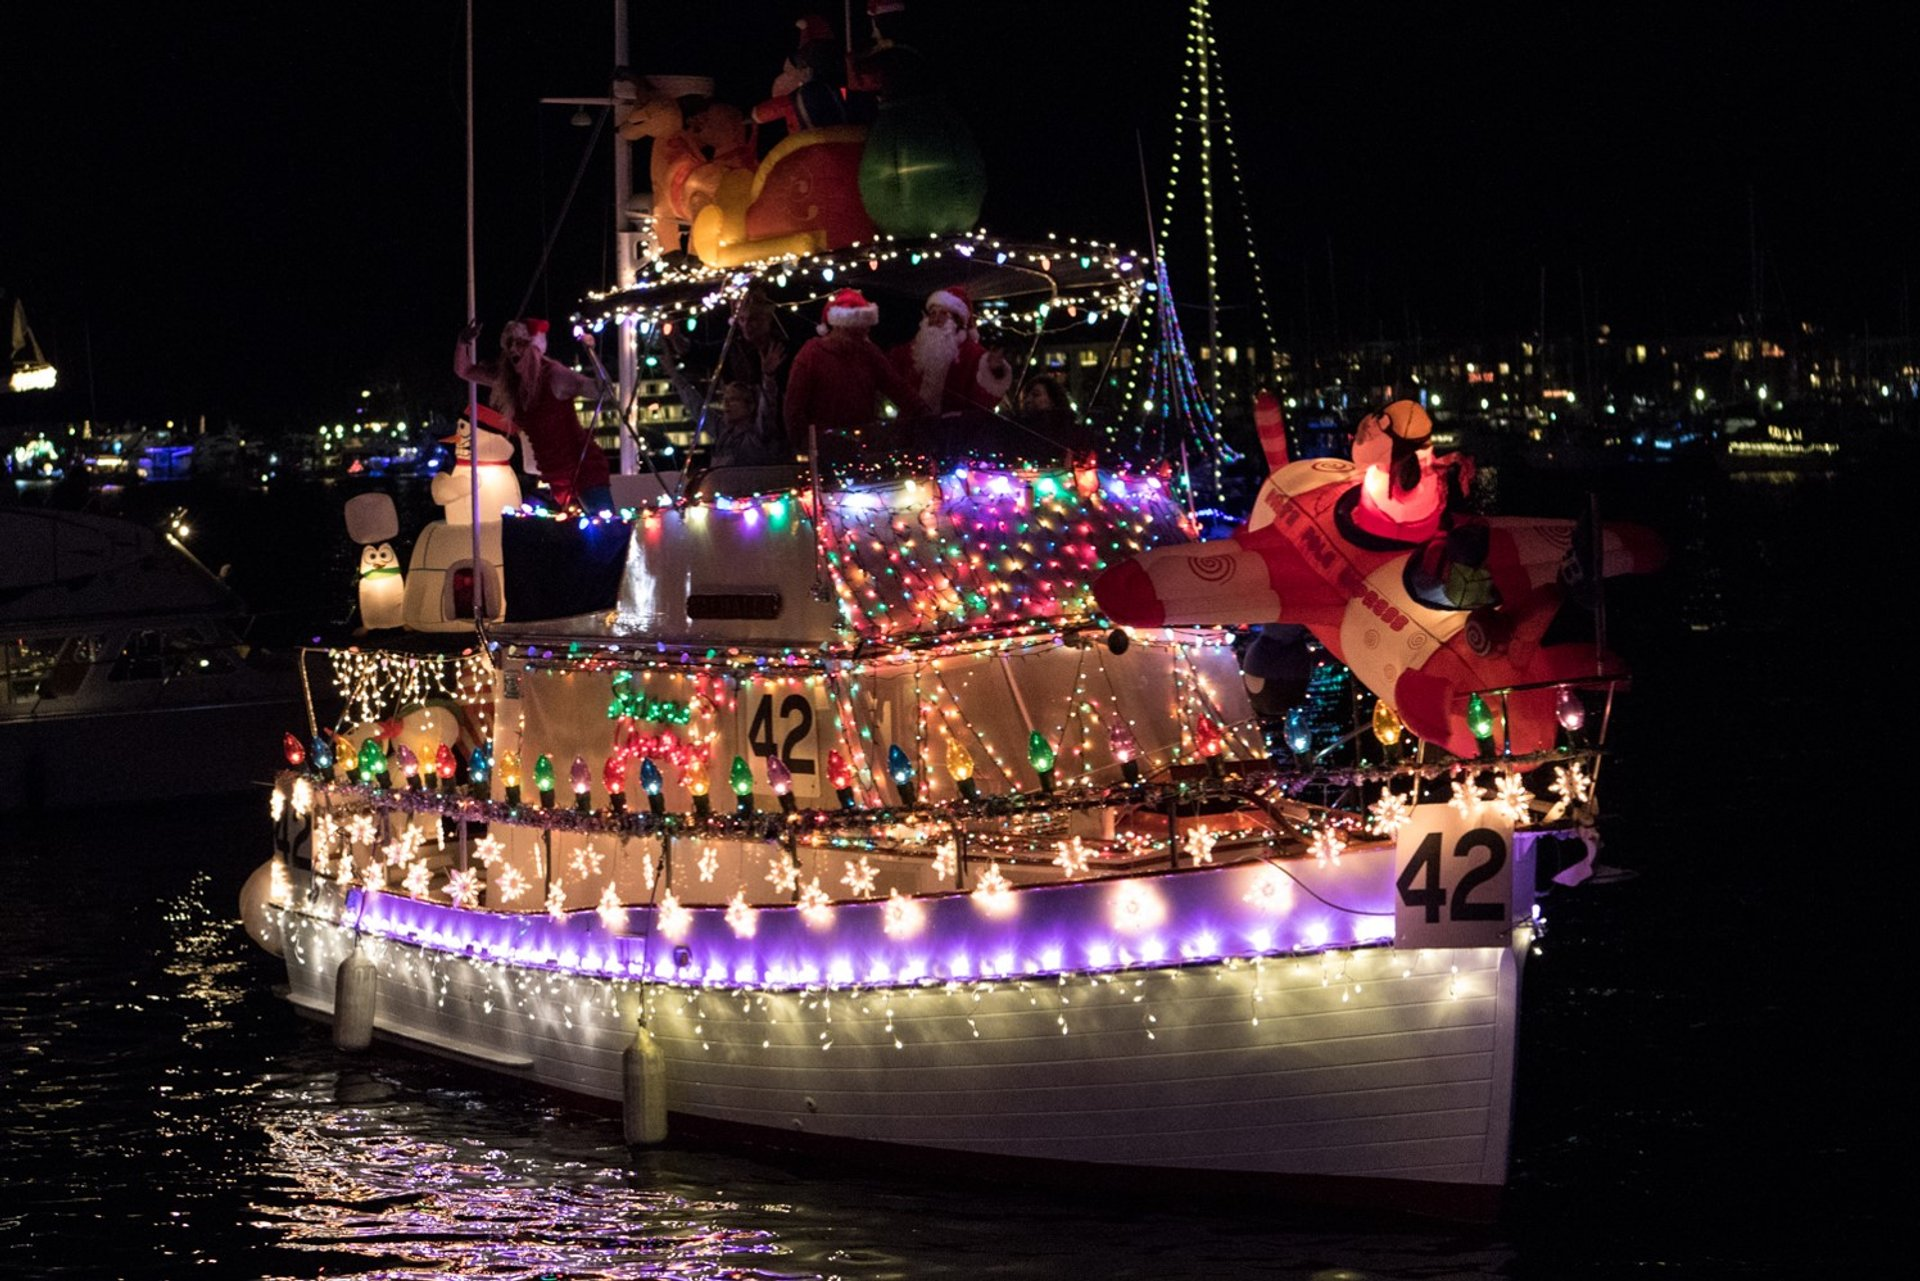 Marina del Rey Holiday Boat Parade in California 2020 - Best Time